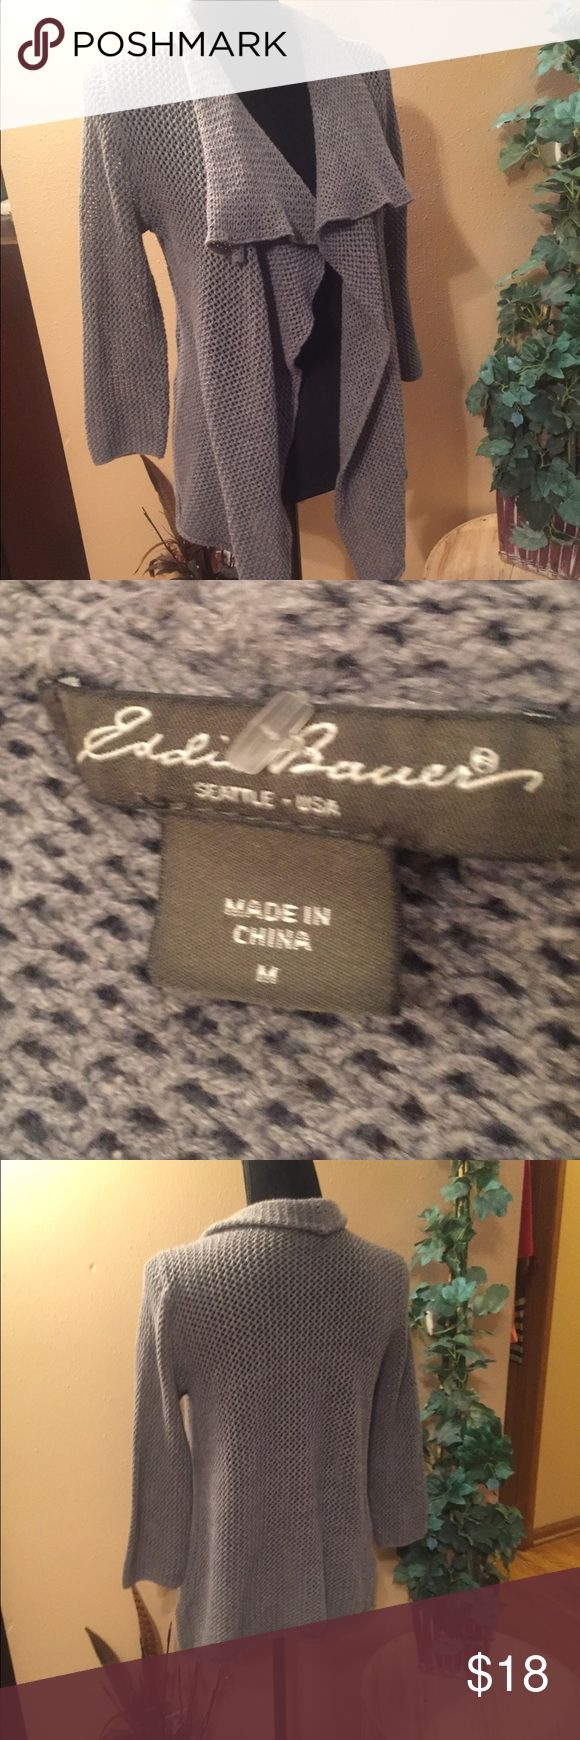 Eddie Bauer Gray Waterfall Cardigan Eddie Bauer. Gray sweater waterfall Cardigan. Like new. Eddie Bauer Sweaters Cardigans